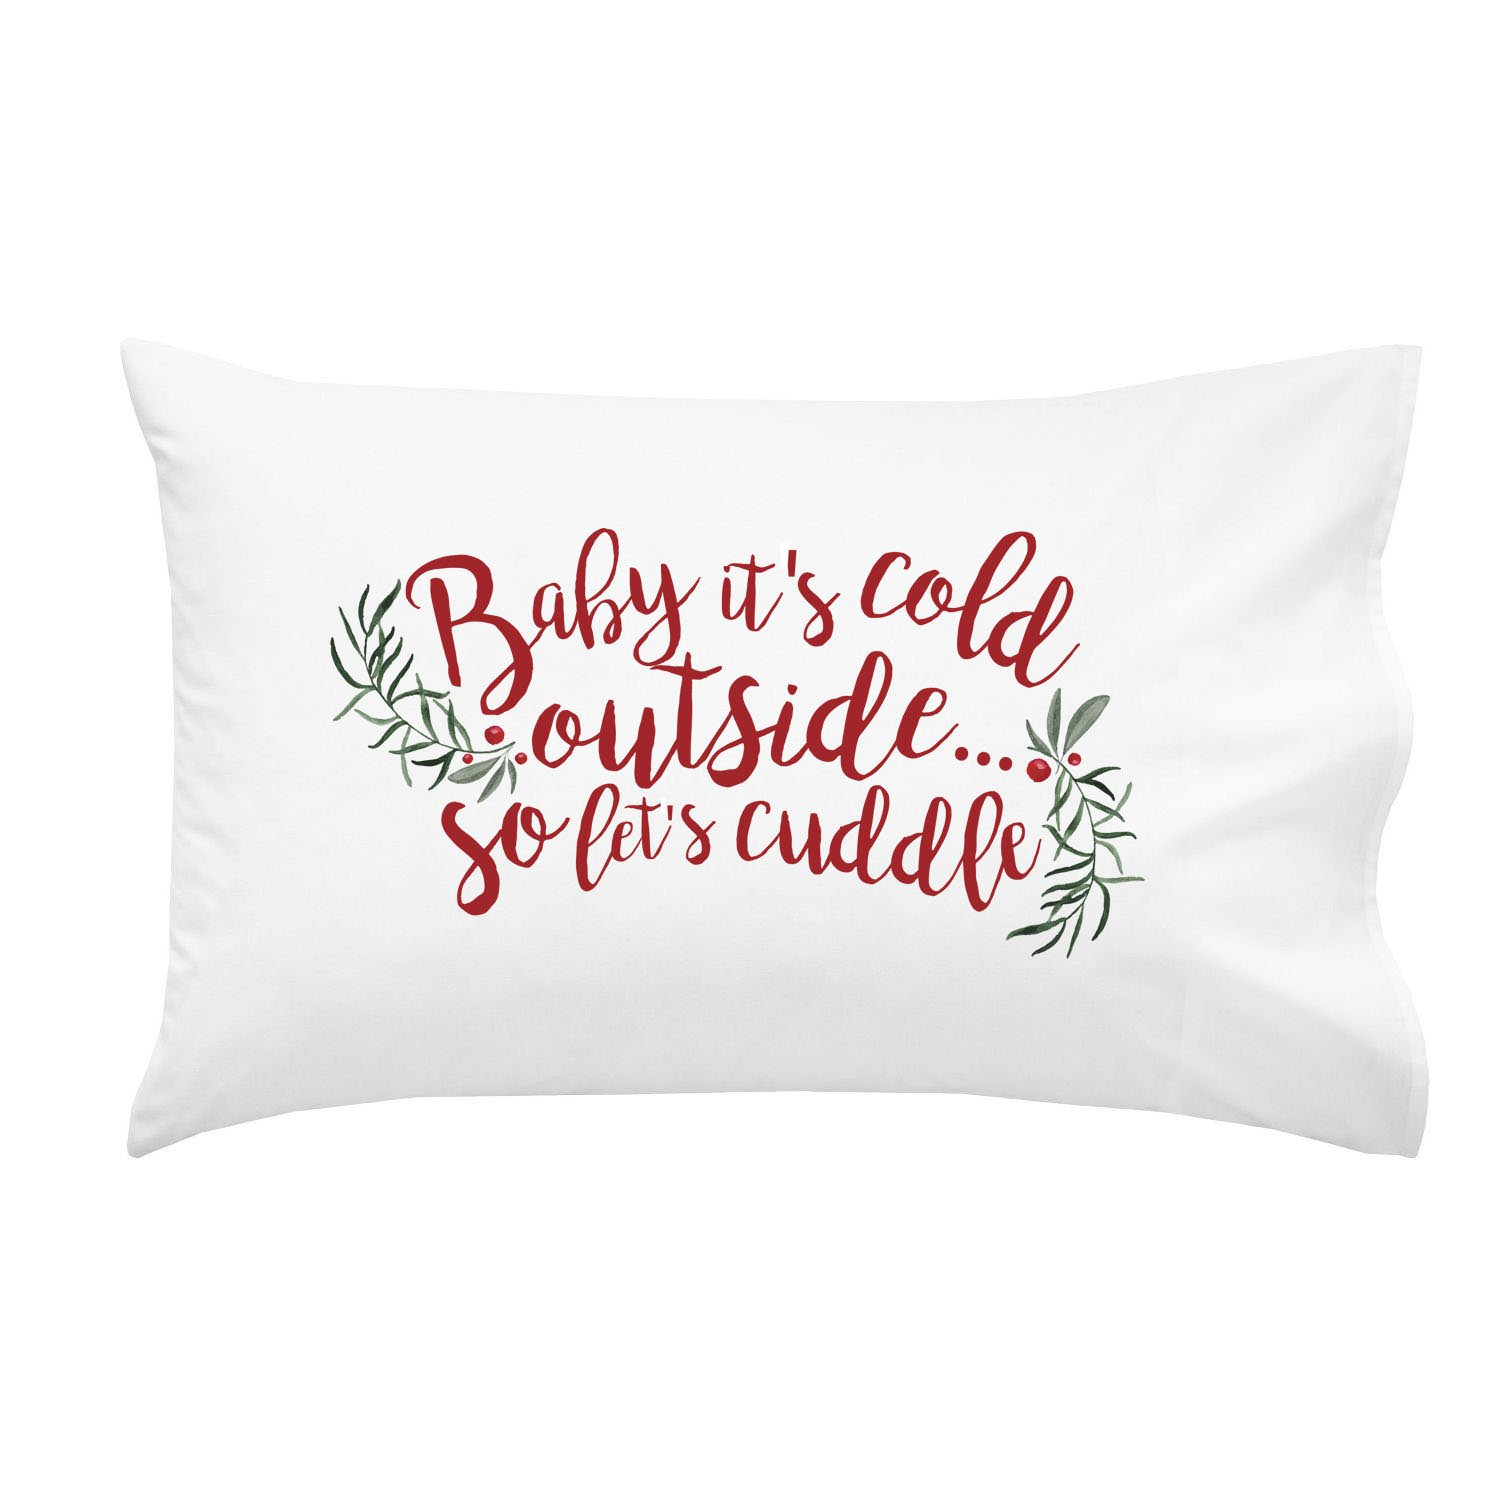 Oh, Susannah Baby It's Cold Outside So Let's Cuddle Christmas Pillowcase - Standard Size Pillow Case (1 20x30 inch, Black) by Oh, Susannah